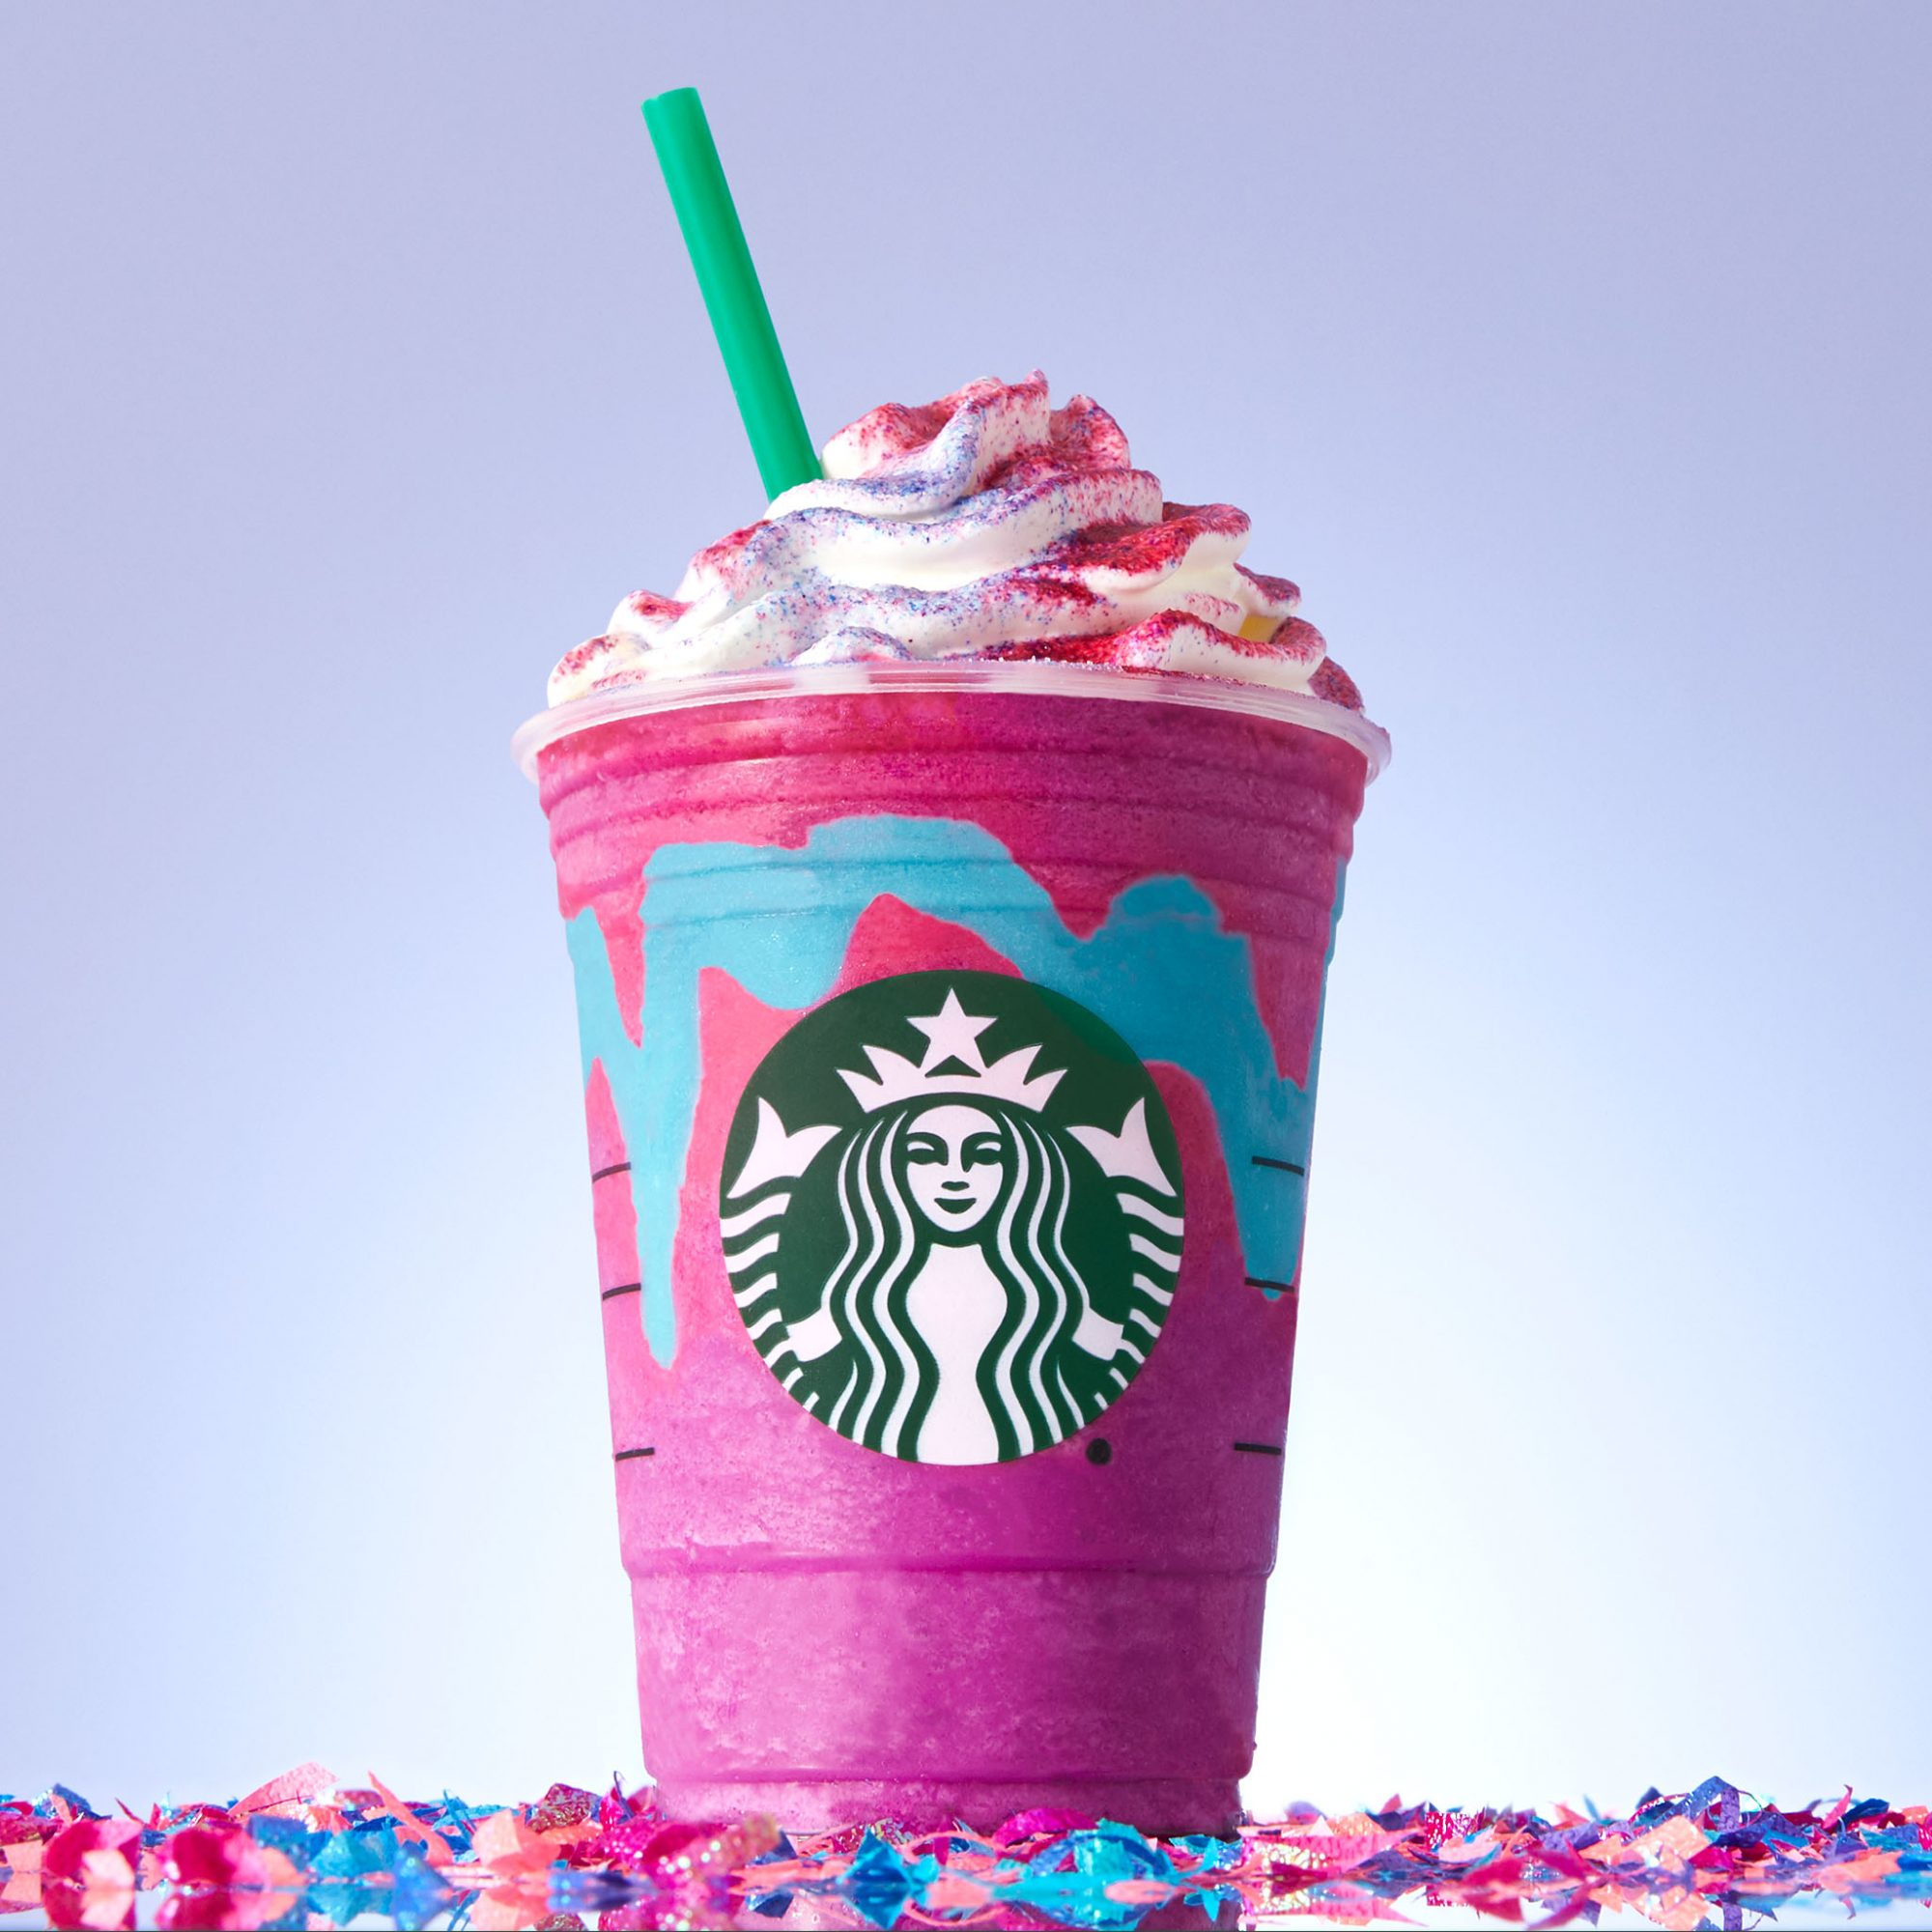 Woman Reveals Pregnancy to Her Husband with a Unicorn Frappuccino